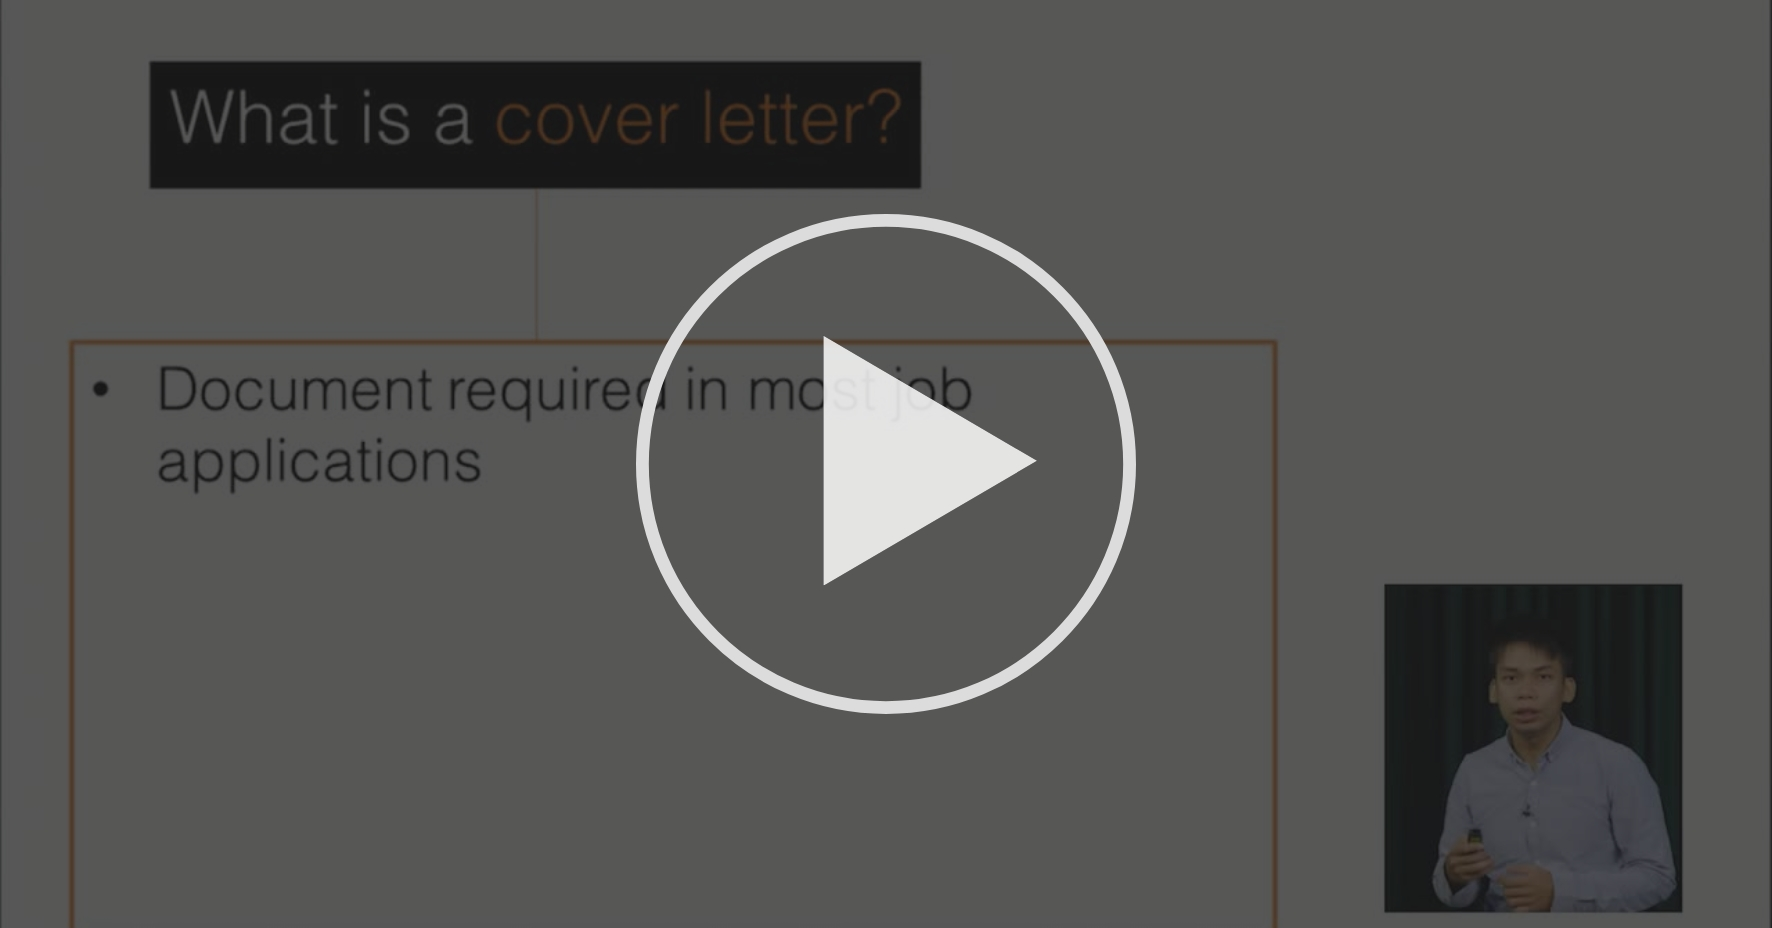 Top cover letter writing websites for university occ consent order article 7